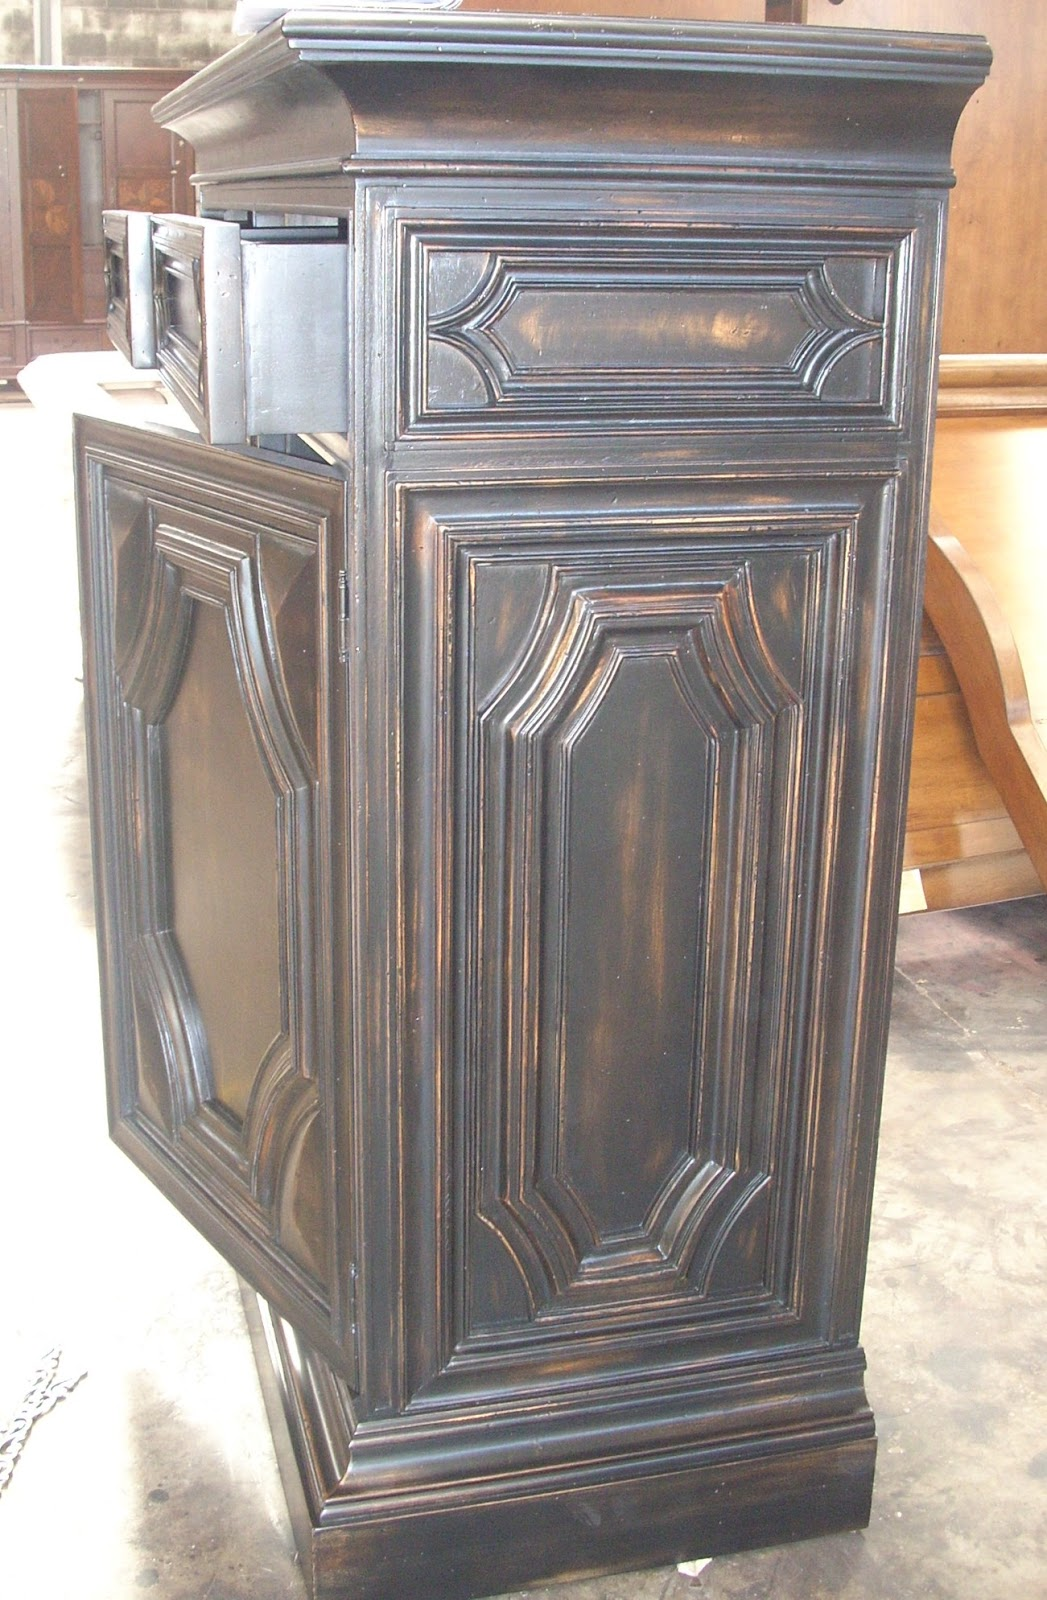 the antique black paint finish - Wisno Wood Furniture Finishing: Antique Black Paint Finish.